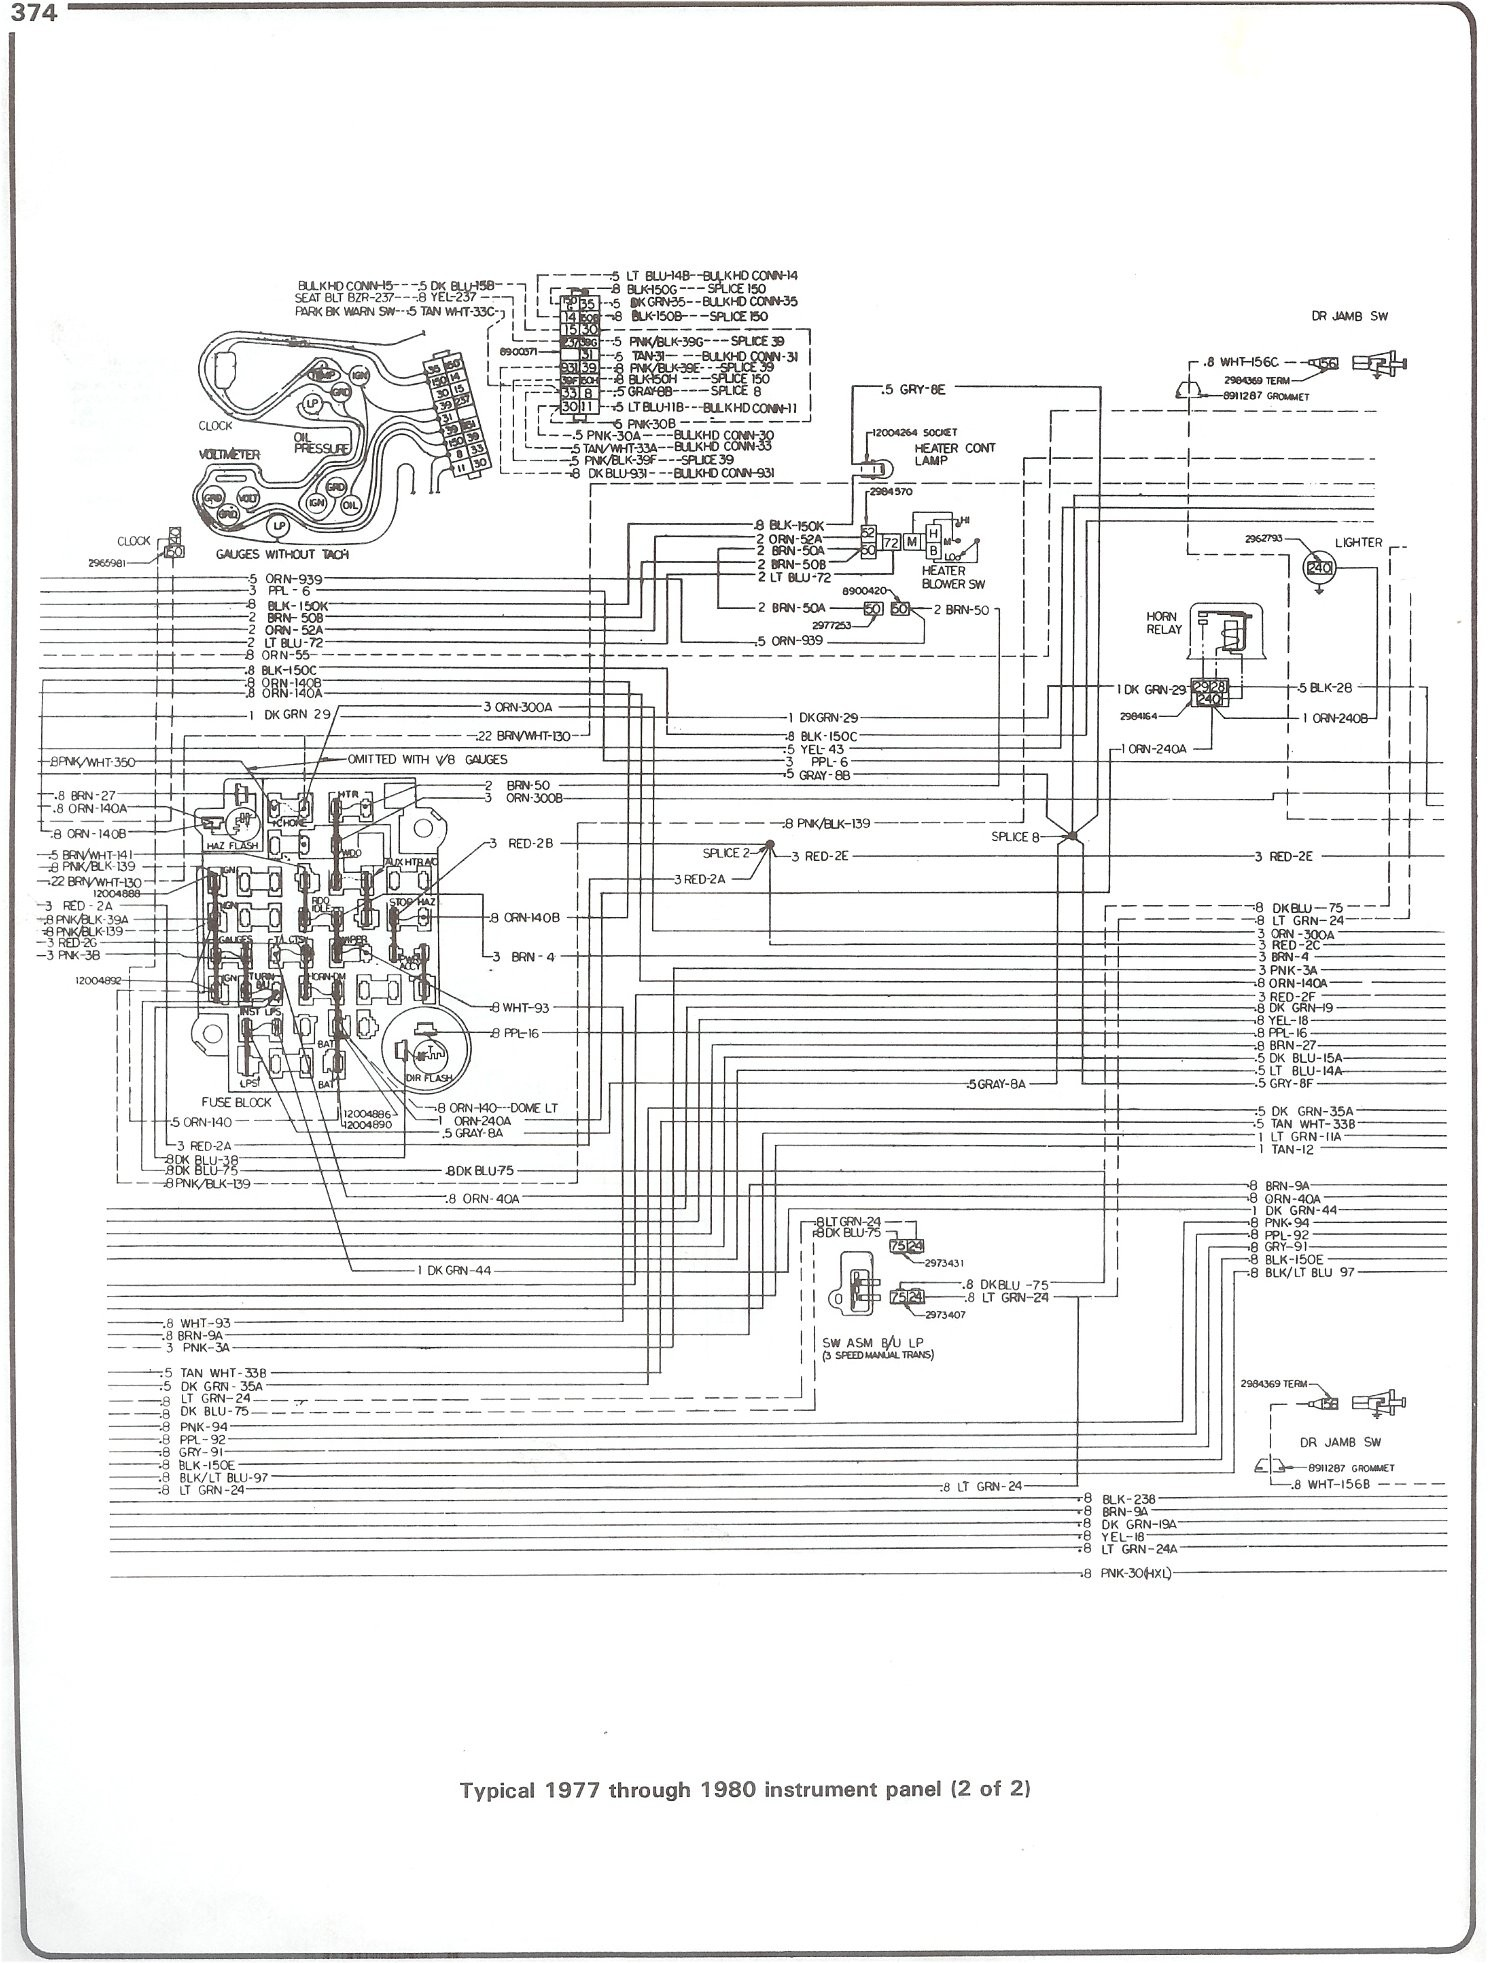 78 dodge wiring diagram online circuit wiring diagram u2022 rh electrobuddha co uk